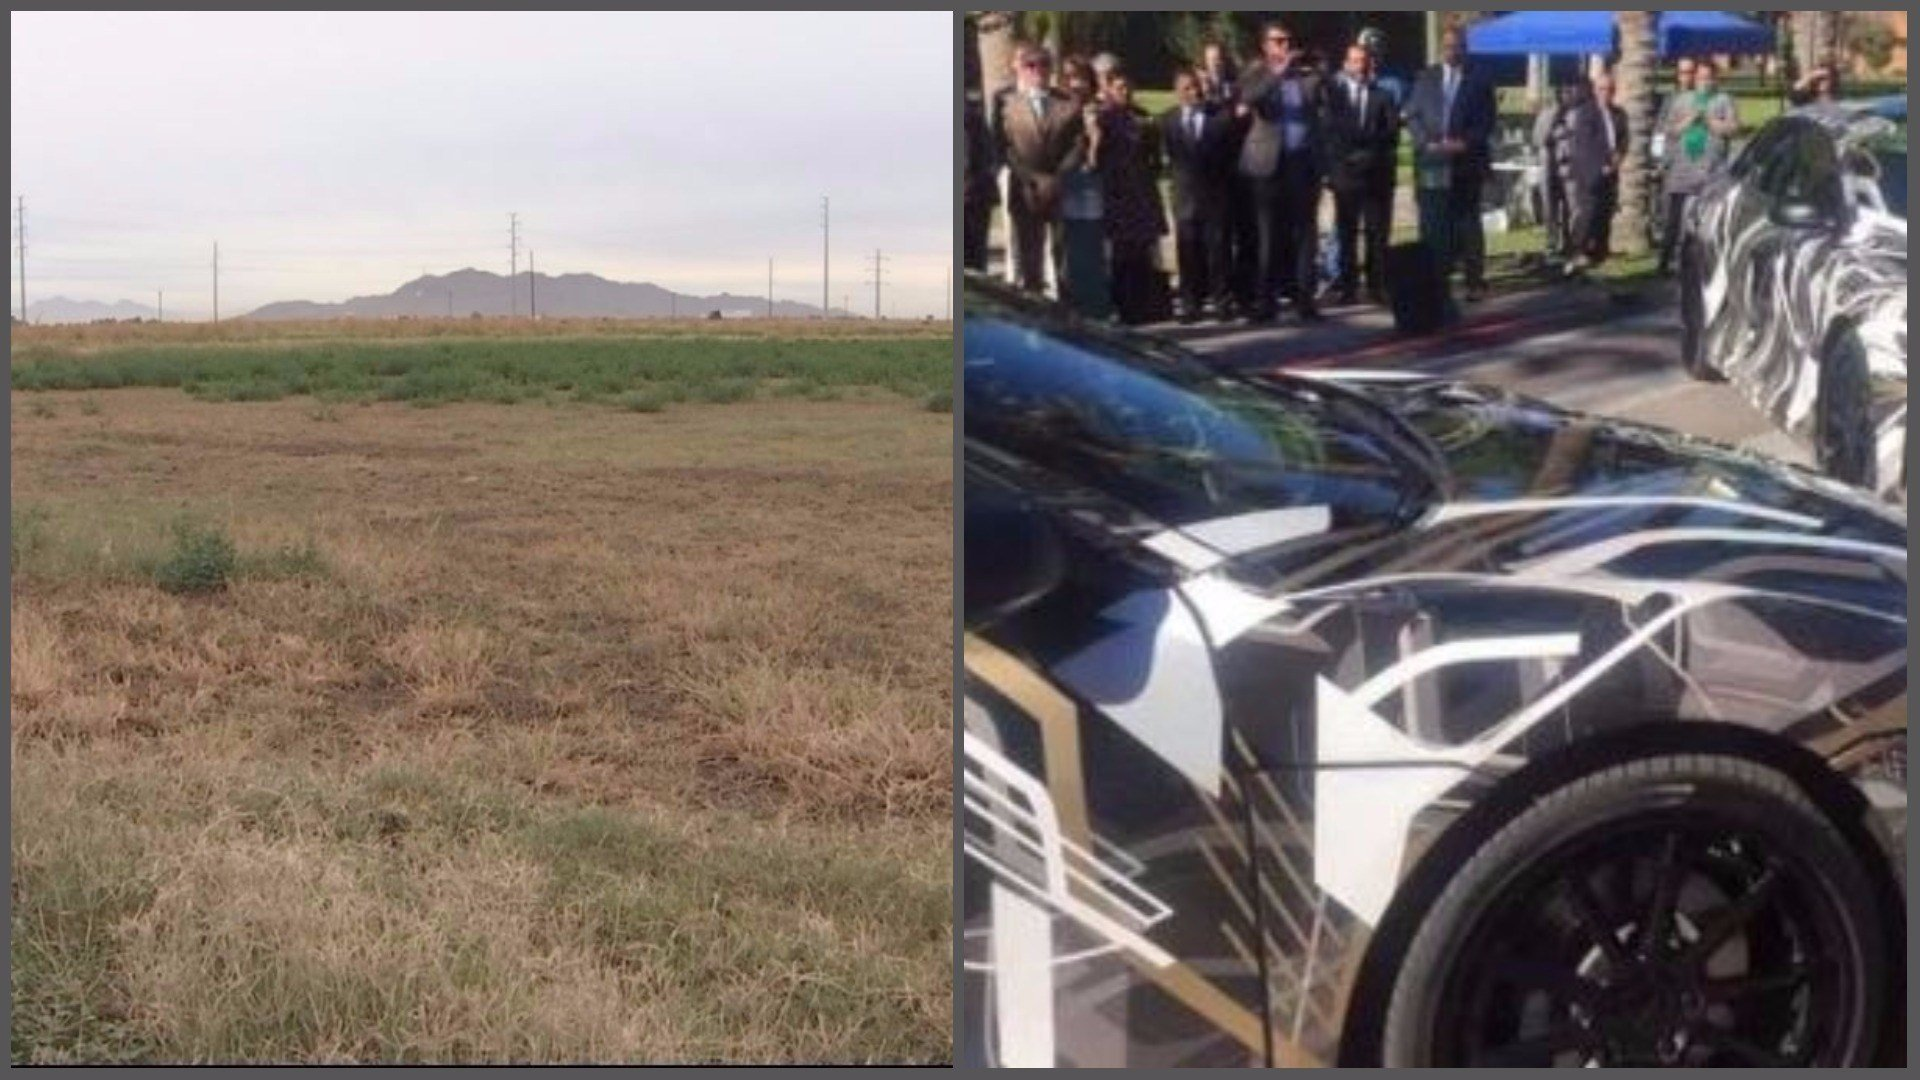 One year after Lucid Motors announced its intention to build a factory in Casa Grande, it still has not broken ground. The site at Peters and Thornton roads sits empty. (Source: 3TV/CBS 5)